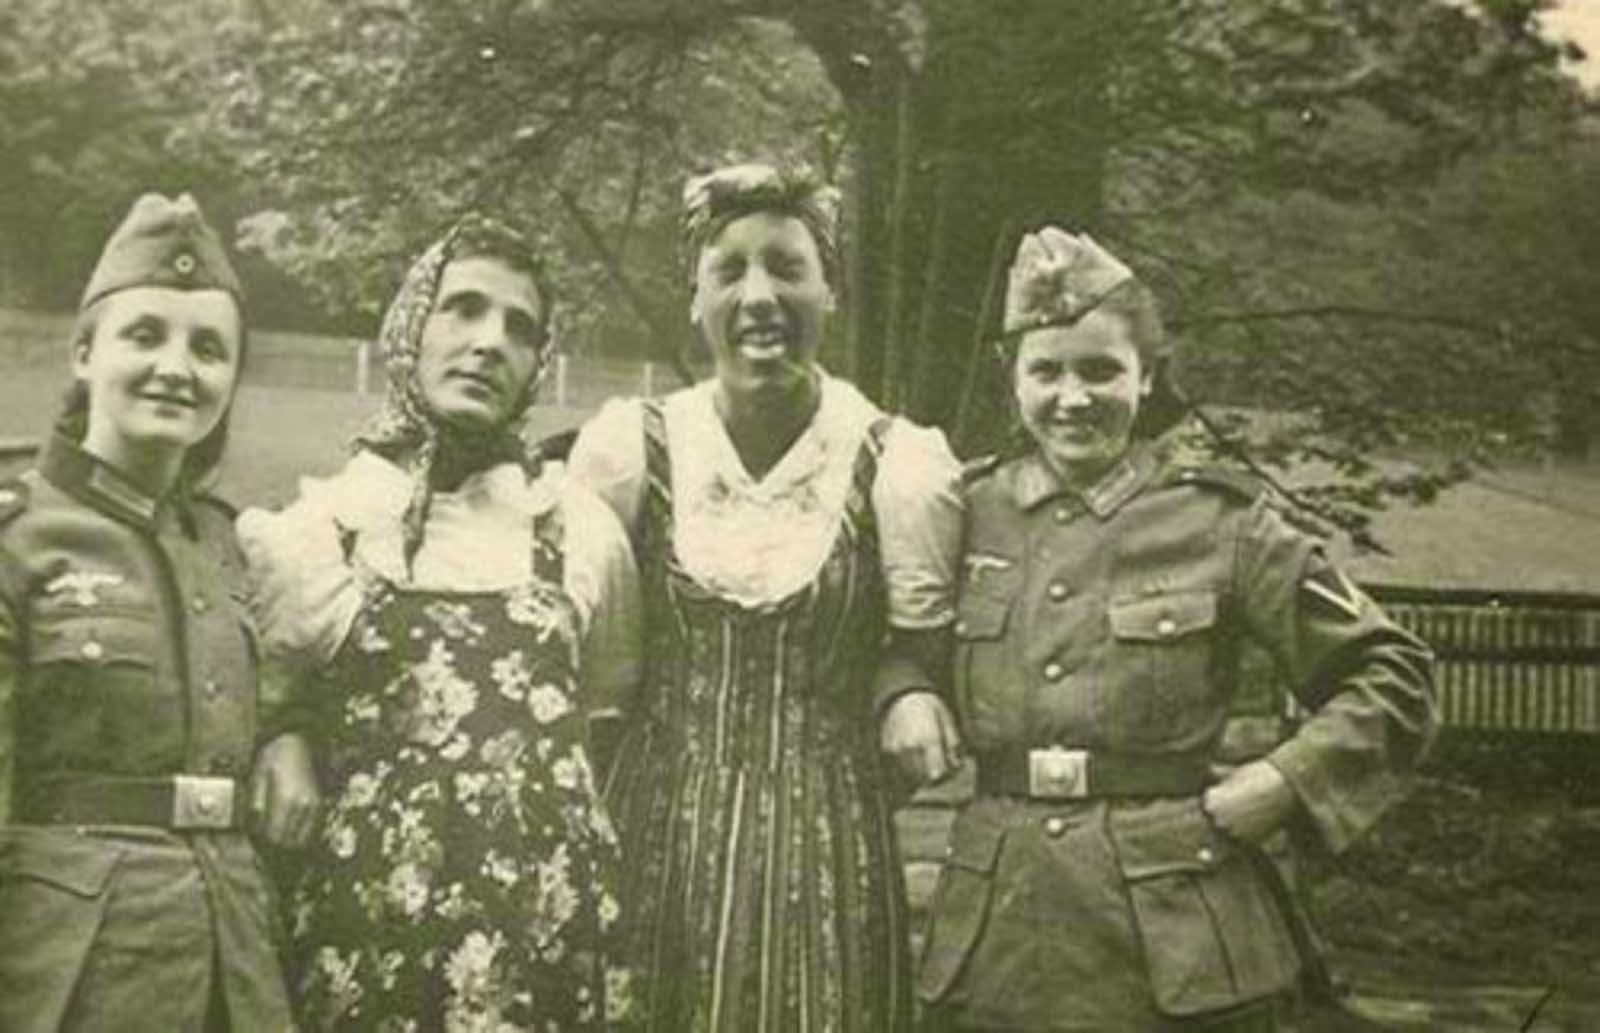 German soldiers exchanging their clothes with their girlfriends. Those uniforms really fit those women pretty well!